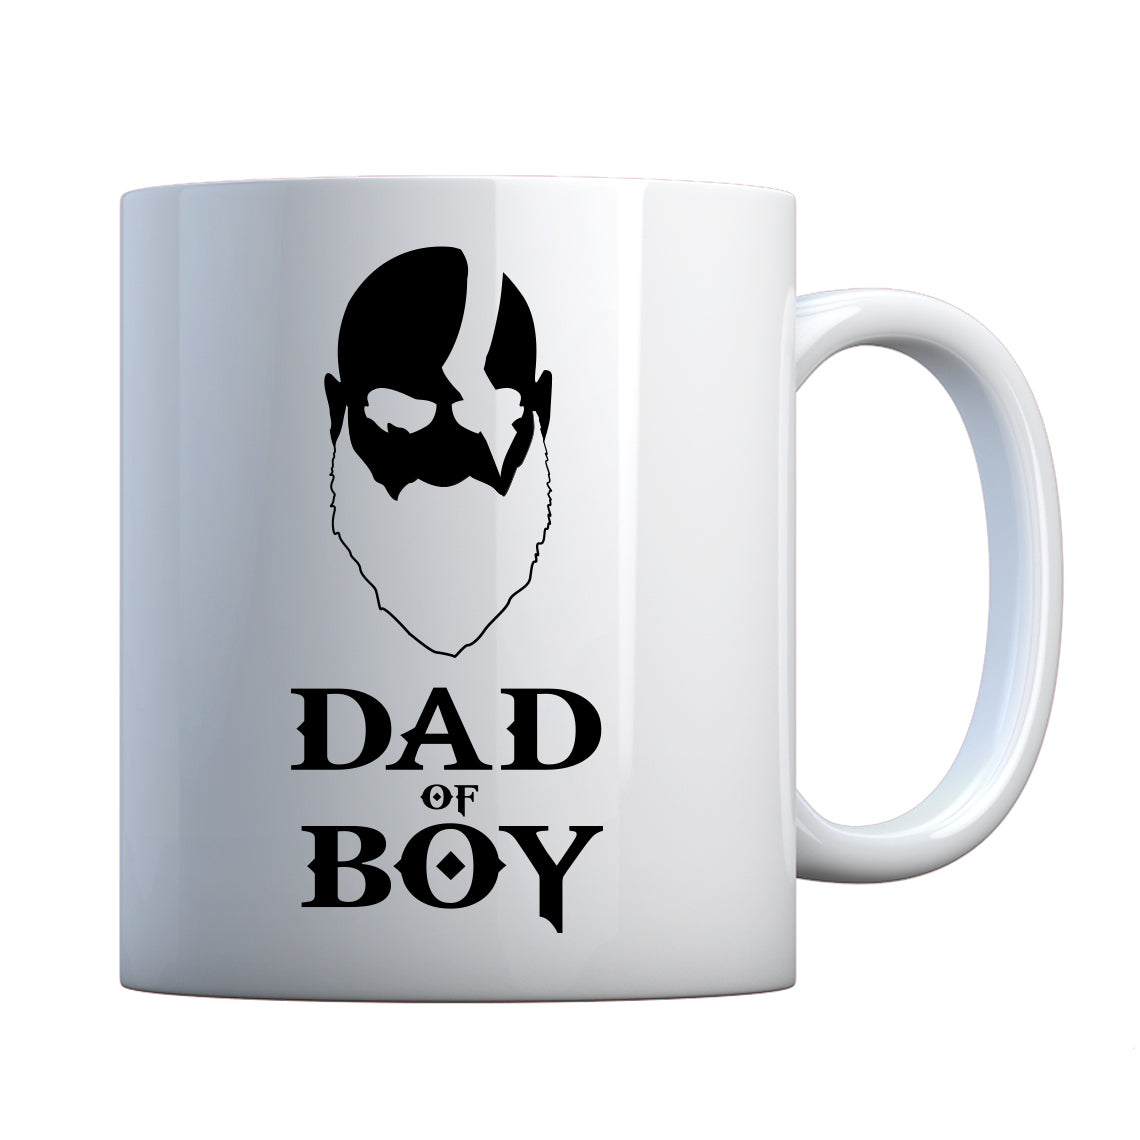 Mug Dad of Boy Ceramic Gift Mug